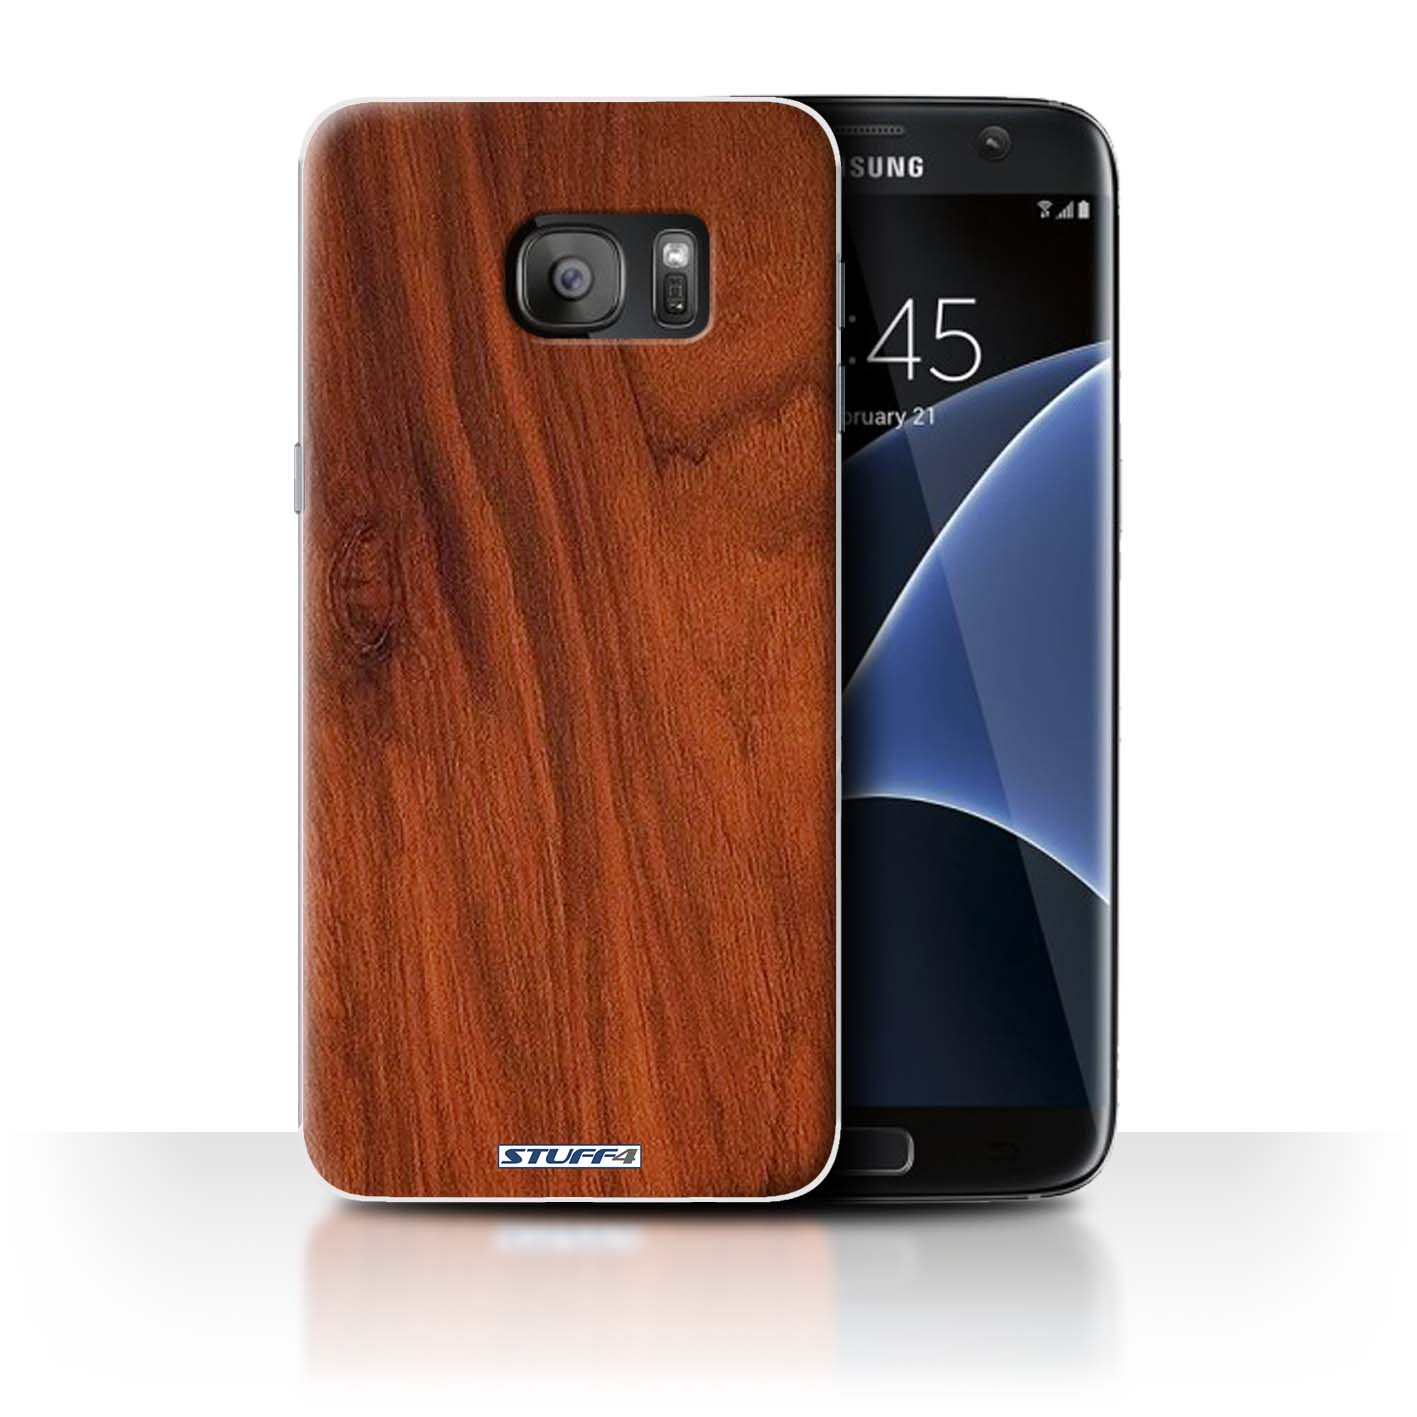 Protective Hard Back Case For Samsung Galaxy S7 Edgeg935 Wood Grain Effectpattern Collection Mahogany